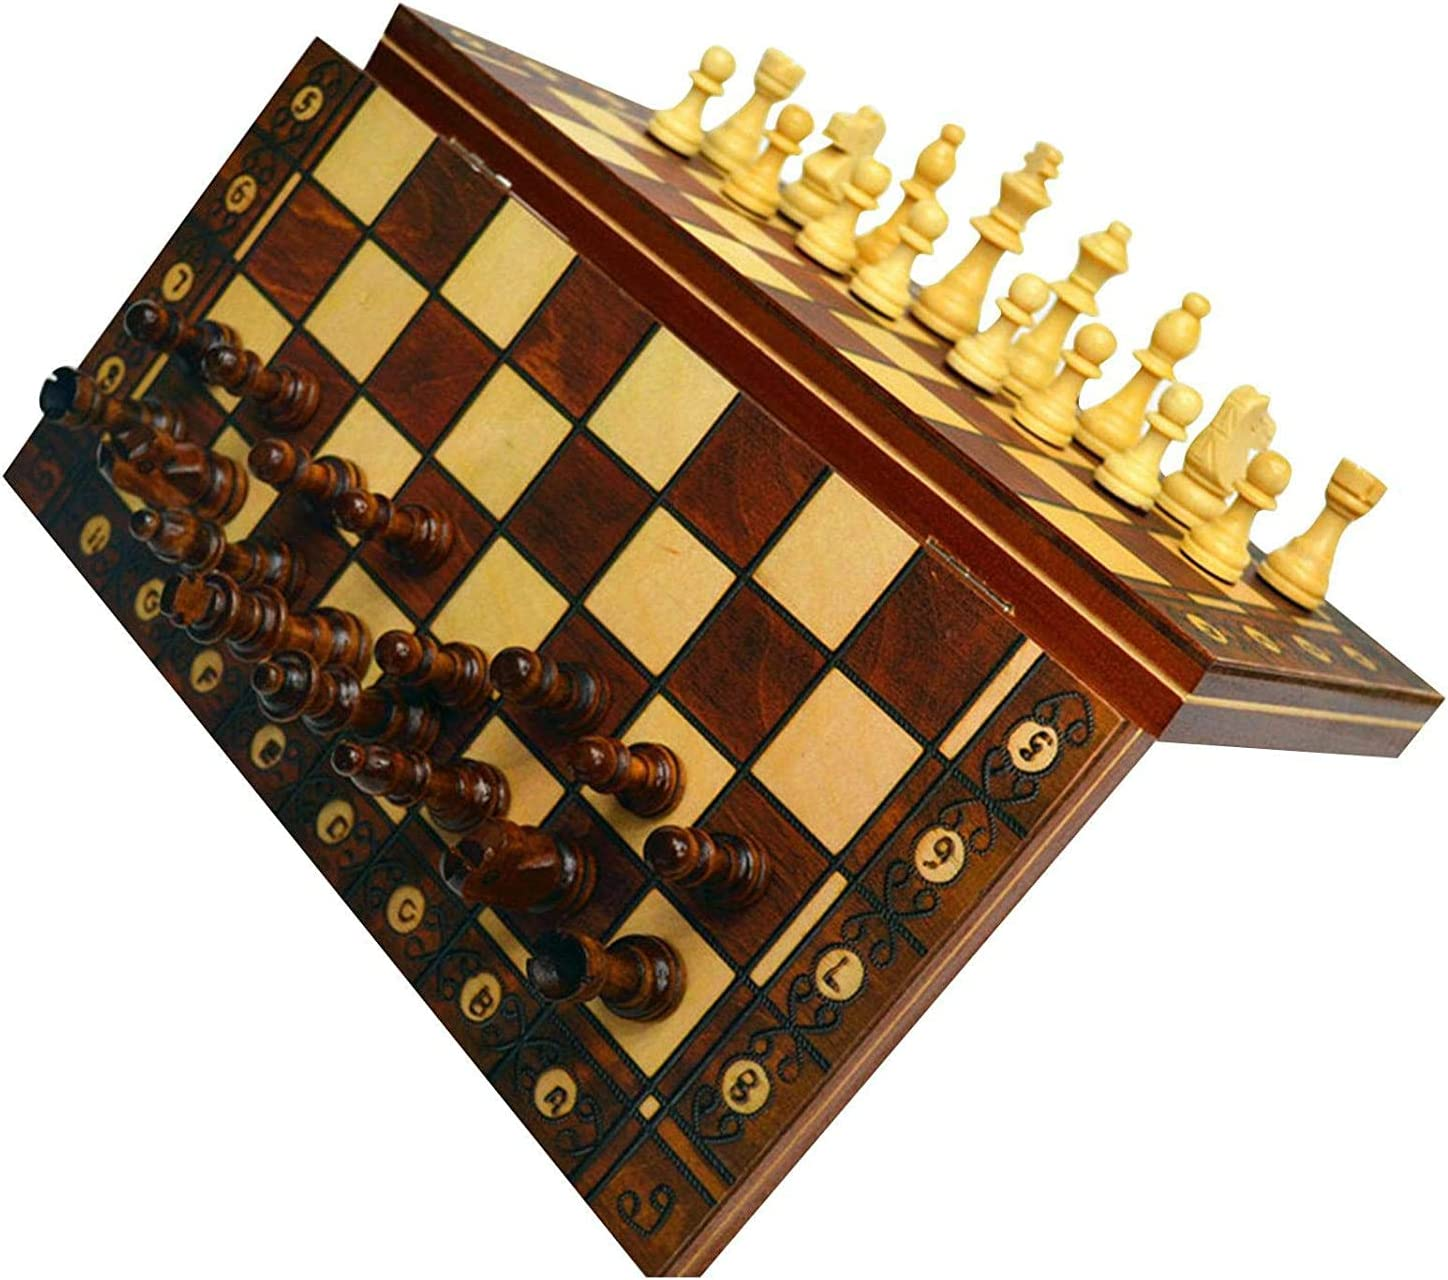 MNBV 3-in-1 latest Chess Game Now on sale Checkers B Wood Backgammon Foldable